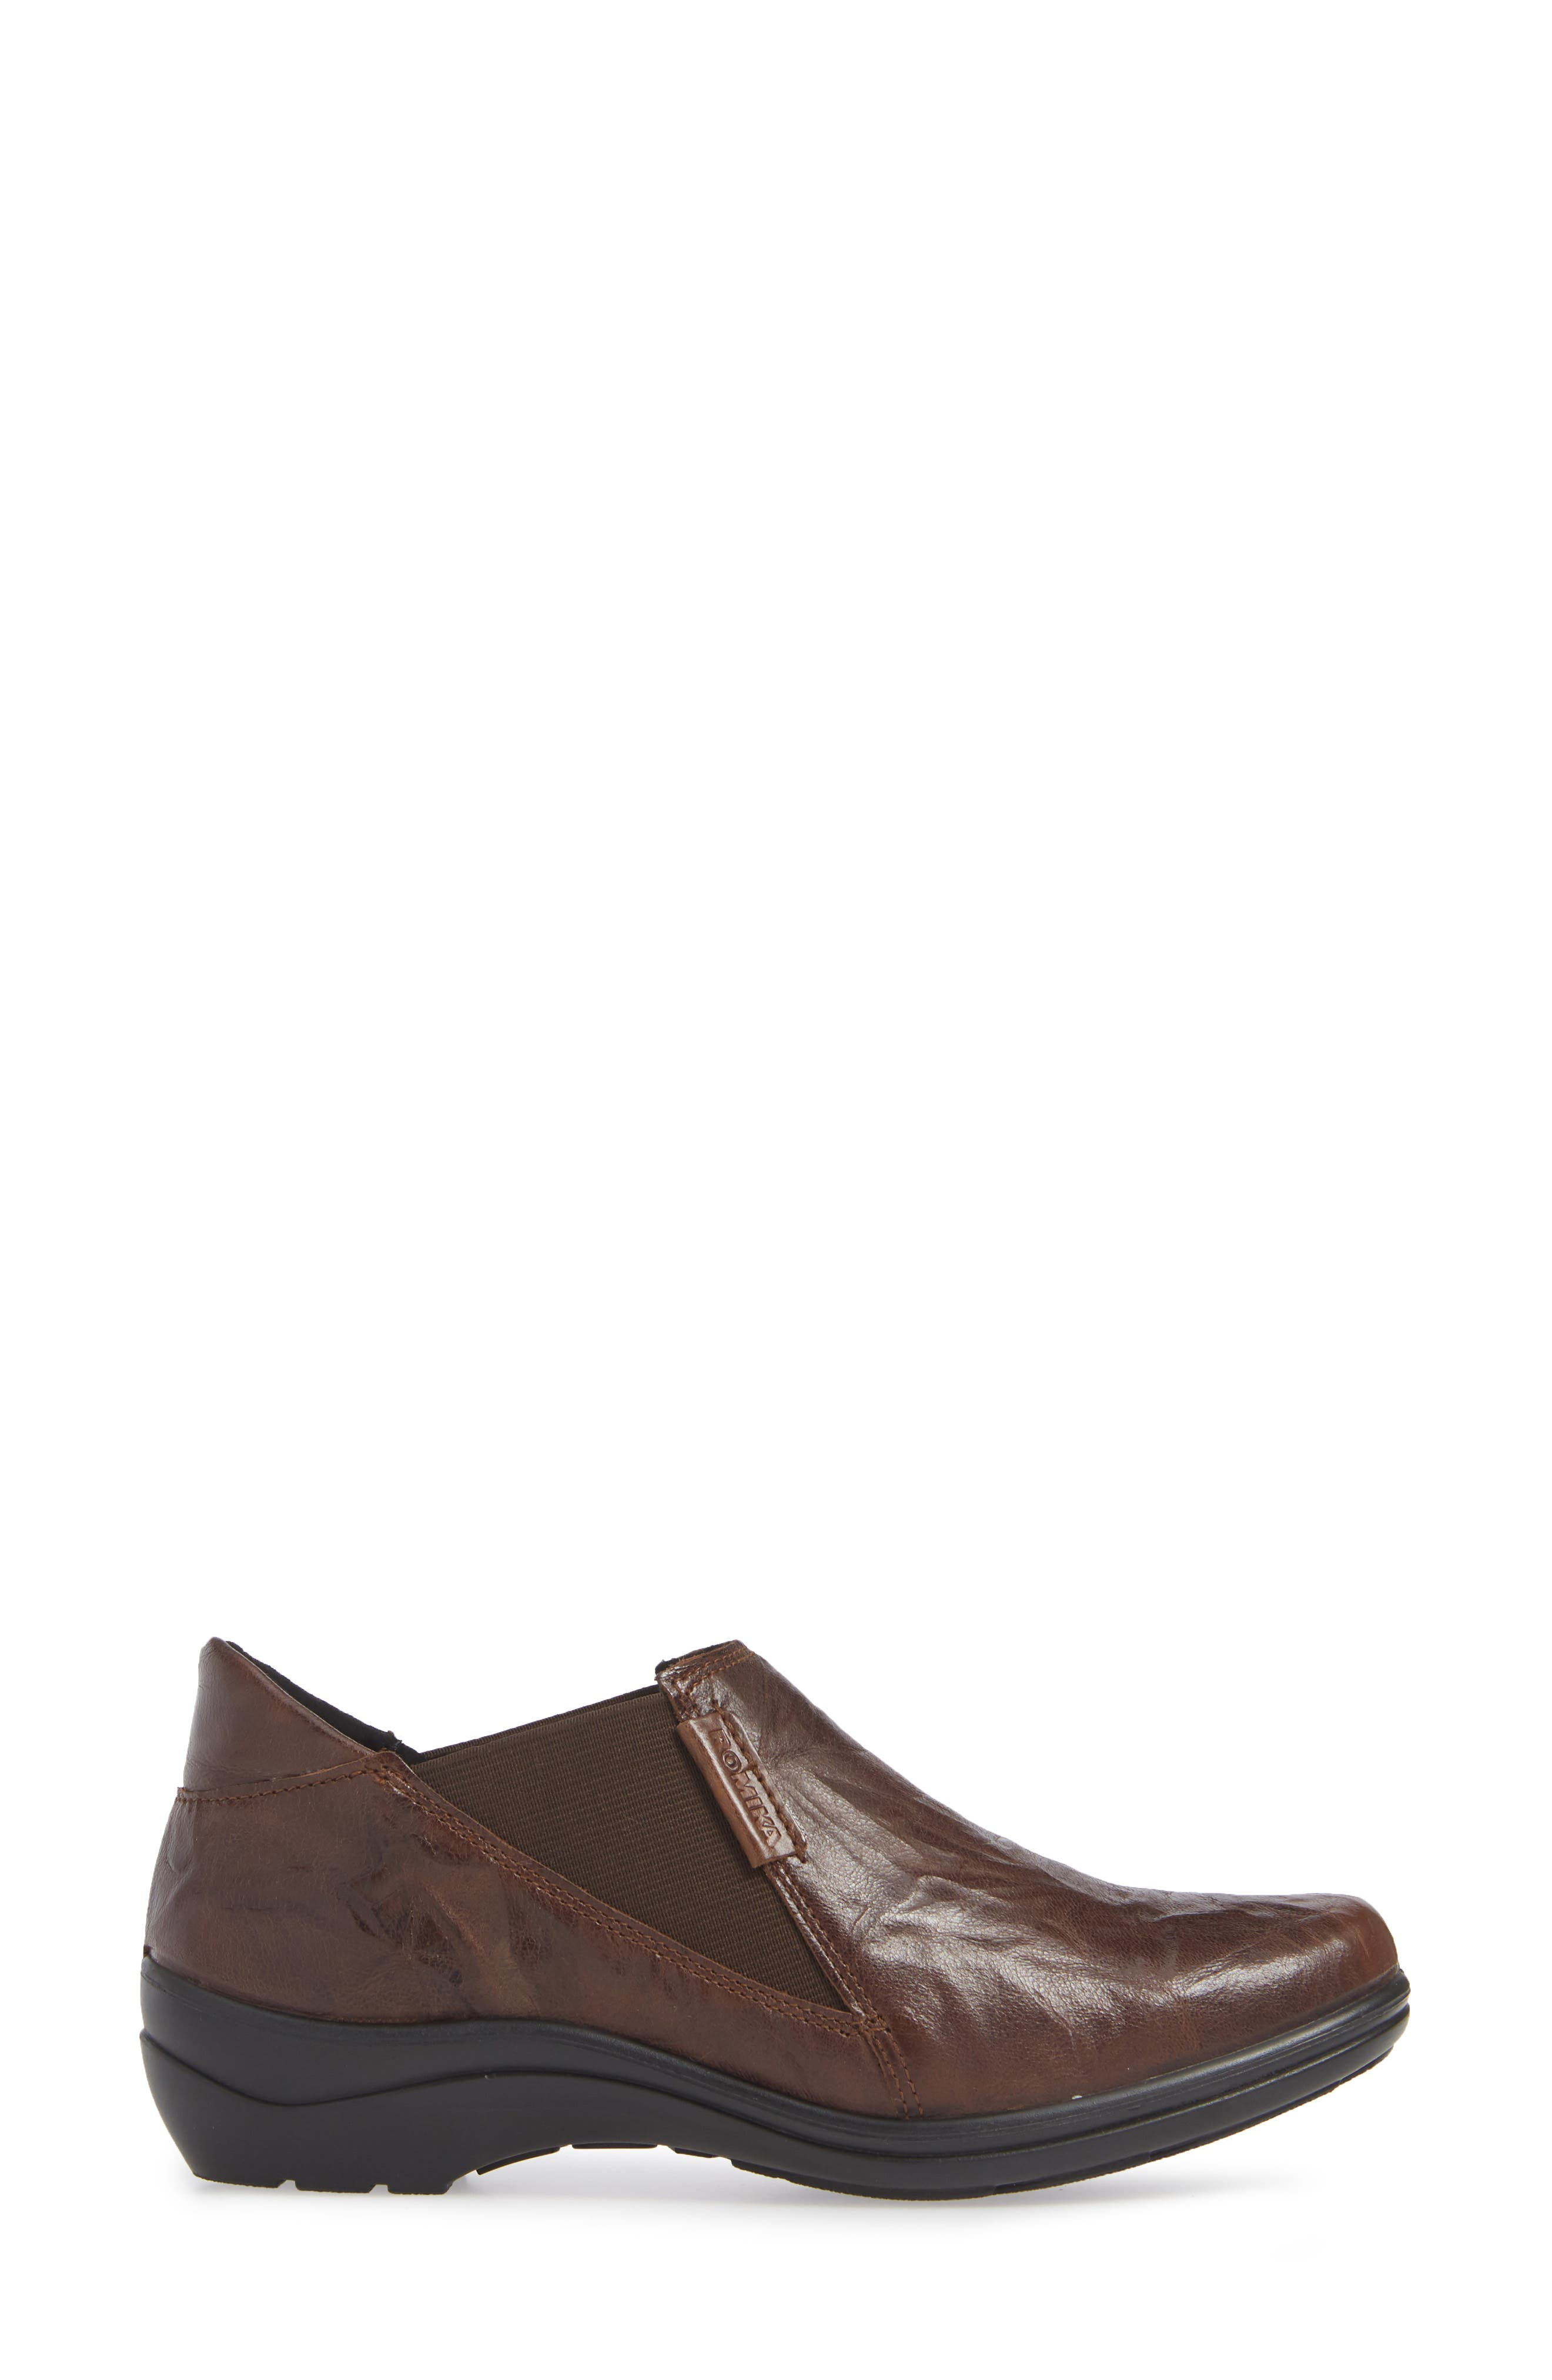 Cassie 44 Ankle Bootie,                             Alternate thumbnail 3, color,                             MORO BO BROWN